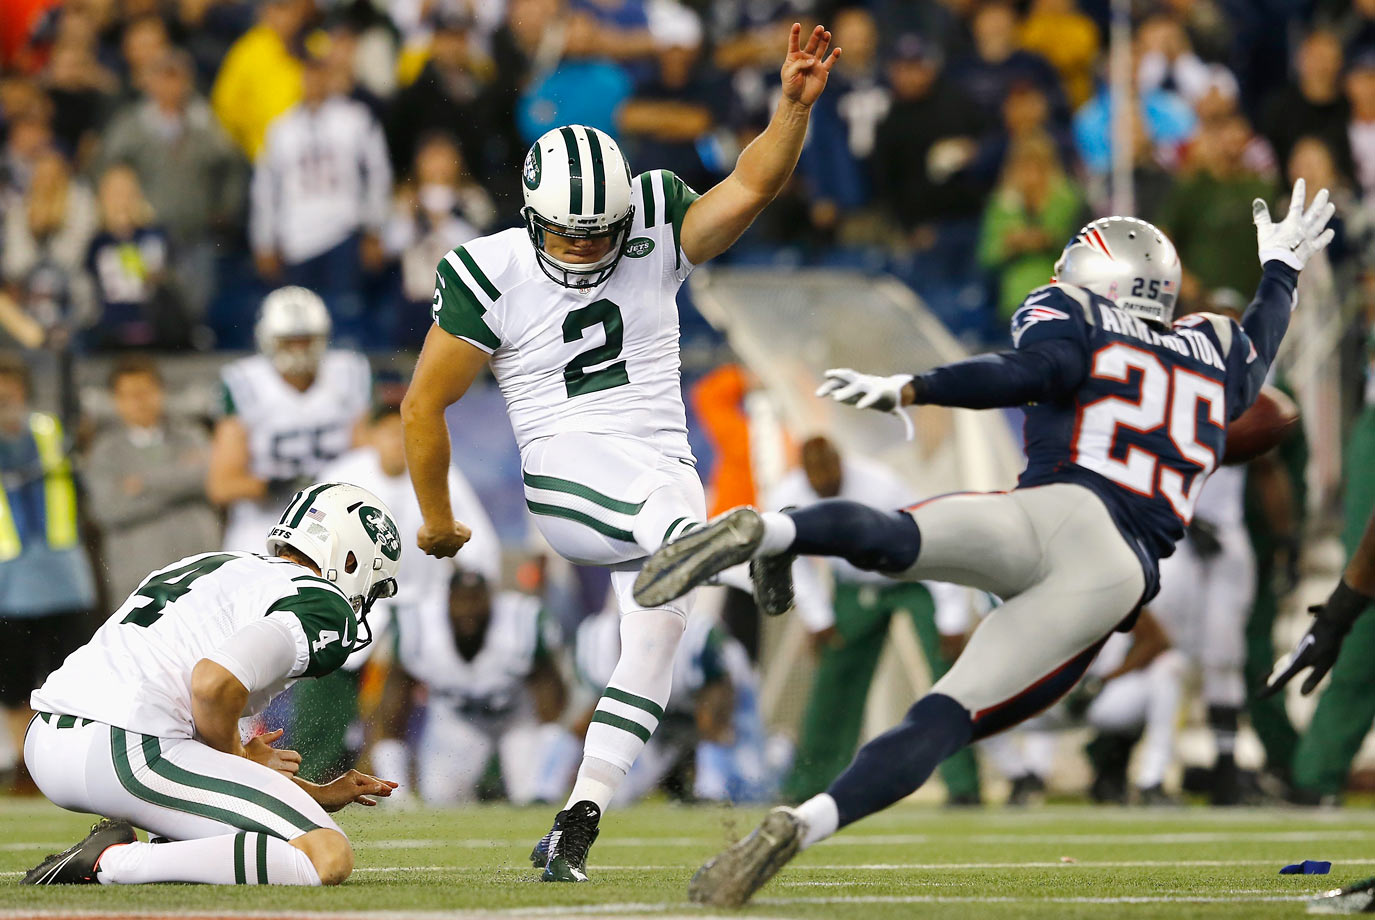 The Patriots narrowly avoided a loss to the Jets by blocking a 58-yard field goal attempt on the final play of the game. Brady remained hot, throwing three touchdown passes in the win.